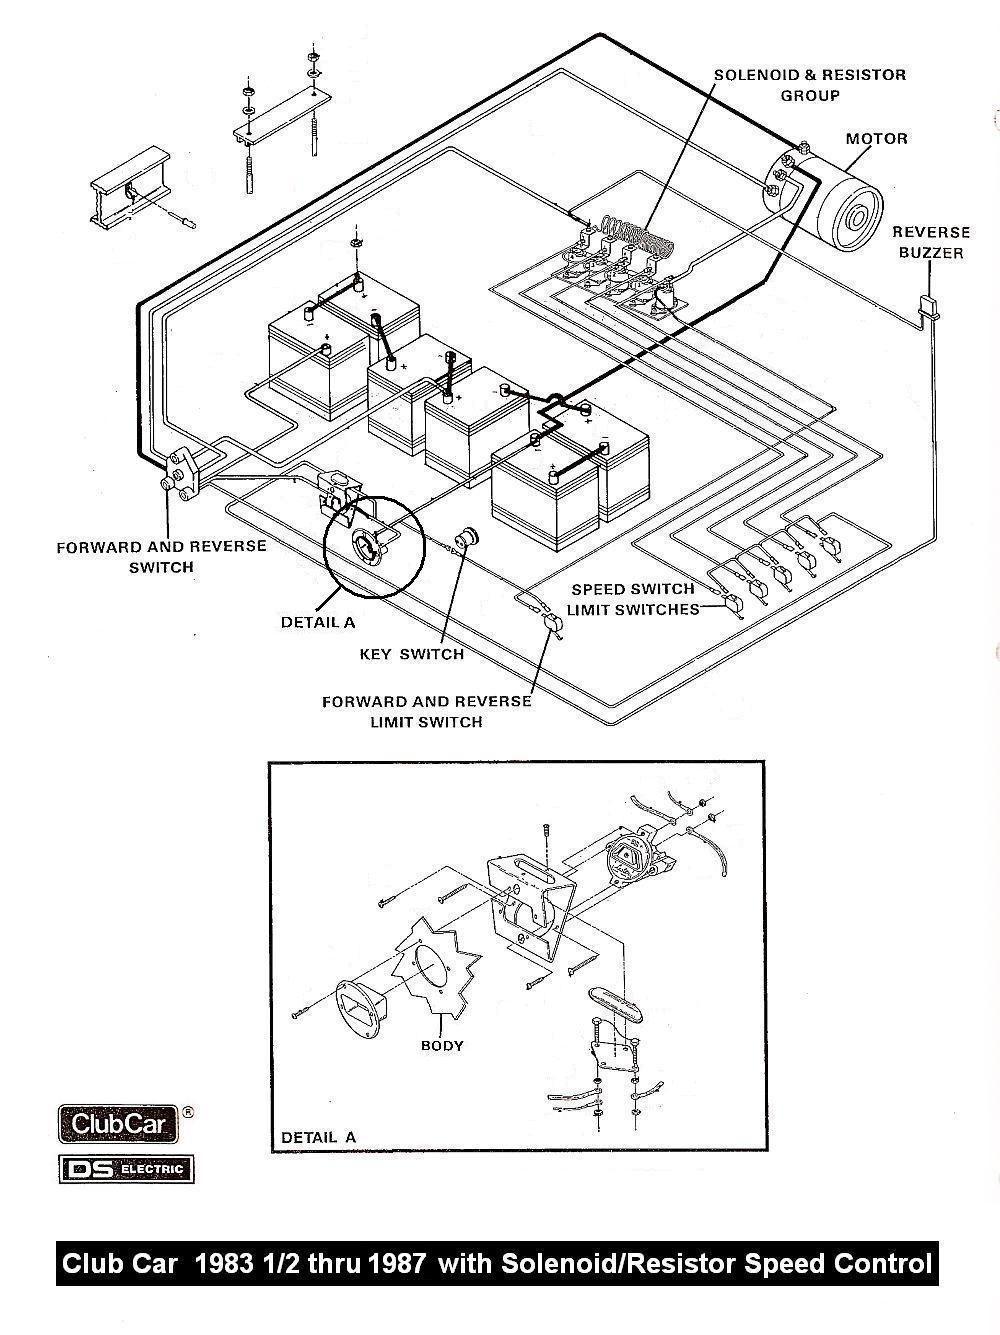 0e8d045370be7682b159825224221faa vintagegolfcartparts com *freezer & crock pot* pinterest 1992 club car ds wiring diagram at gsmportal.co